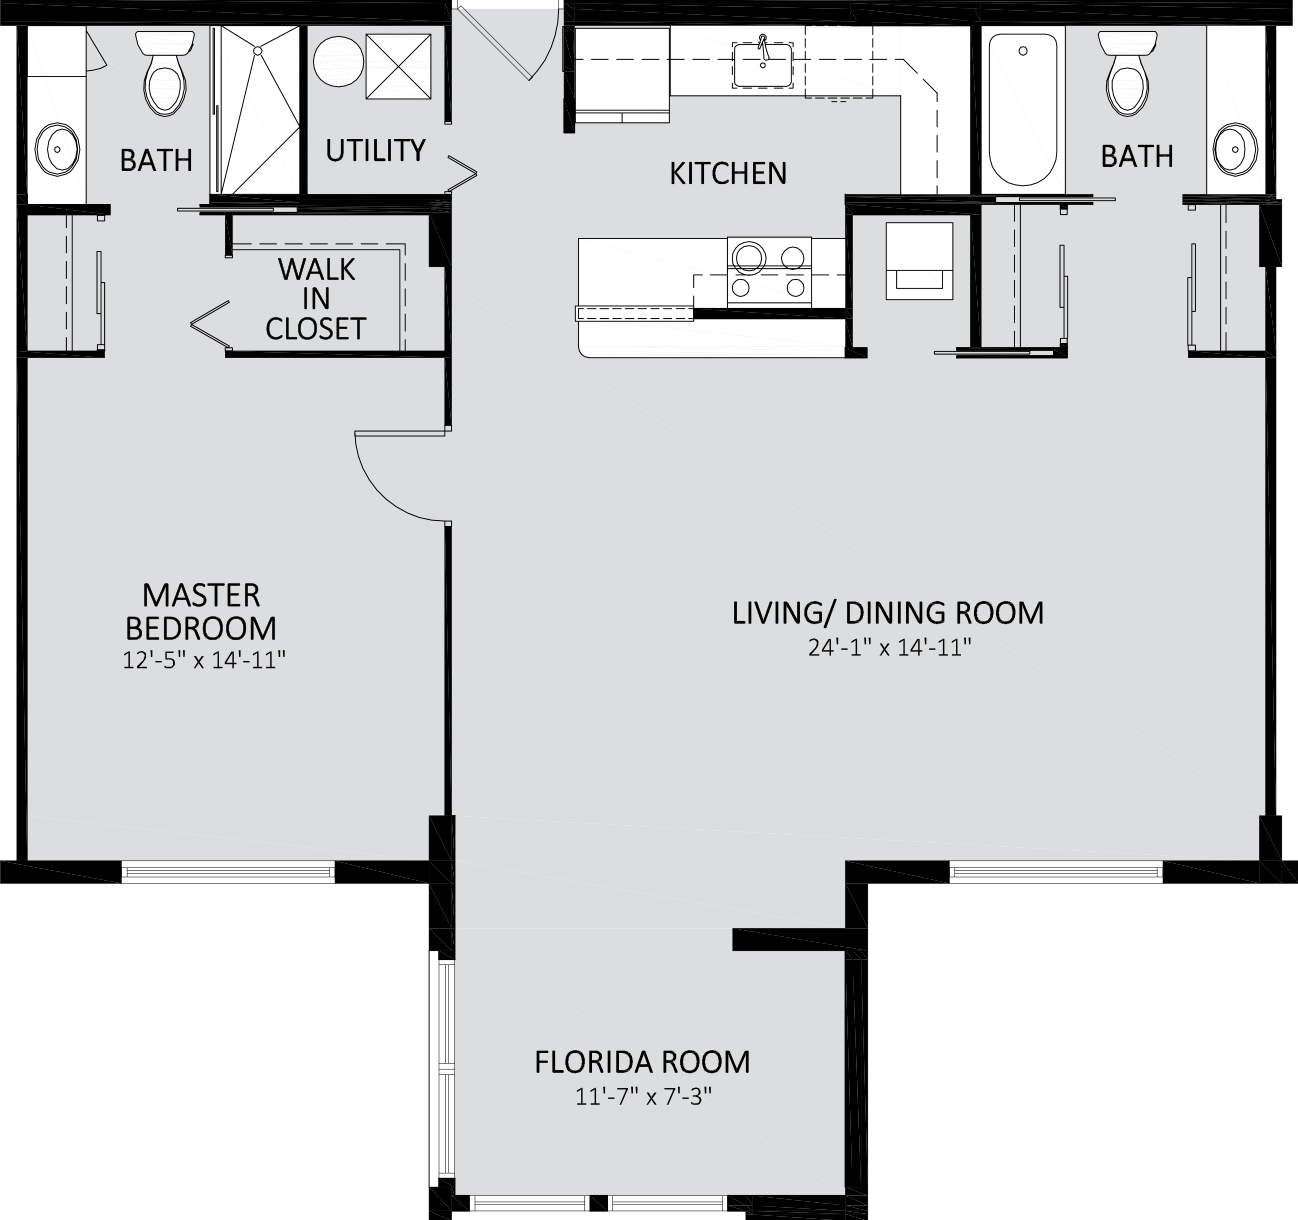 Ocean Breeze Contemporary One Bedroom w Great Room A Building 1025 Sq Ft.png